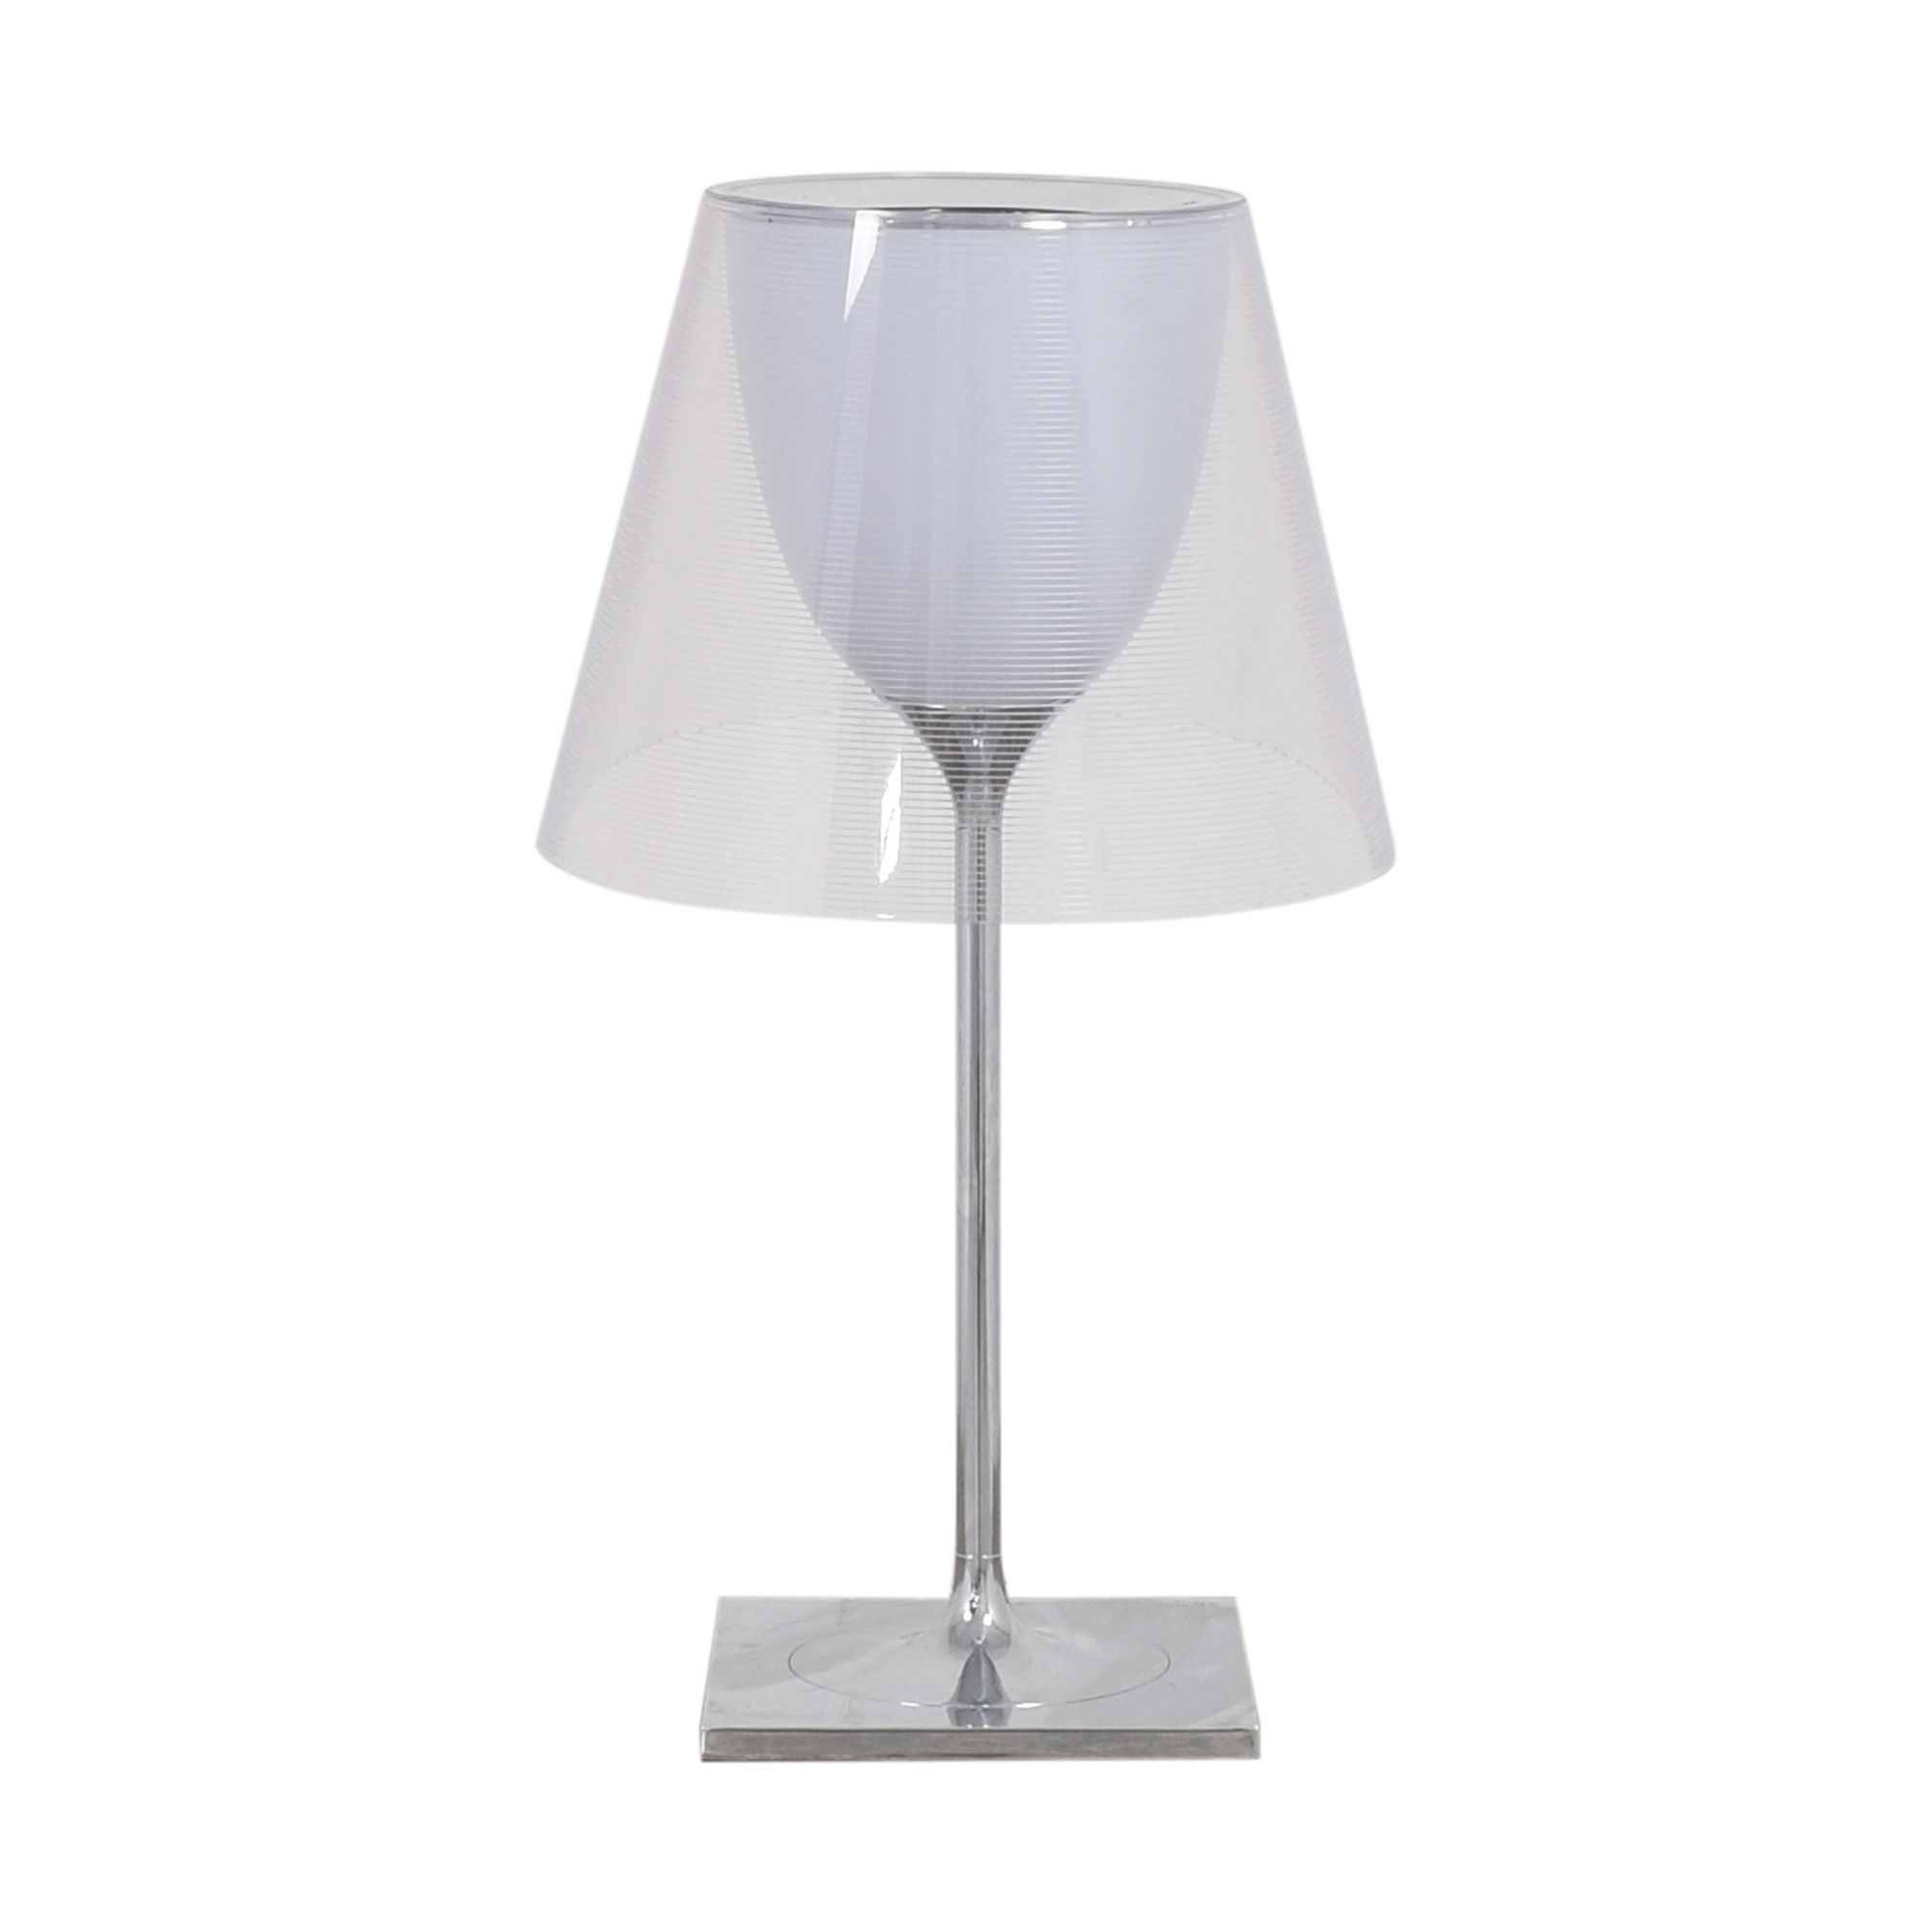 FLOS FLOS  Ktribe T1 Table Lamp on sale